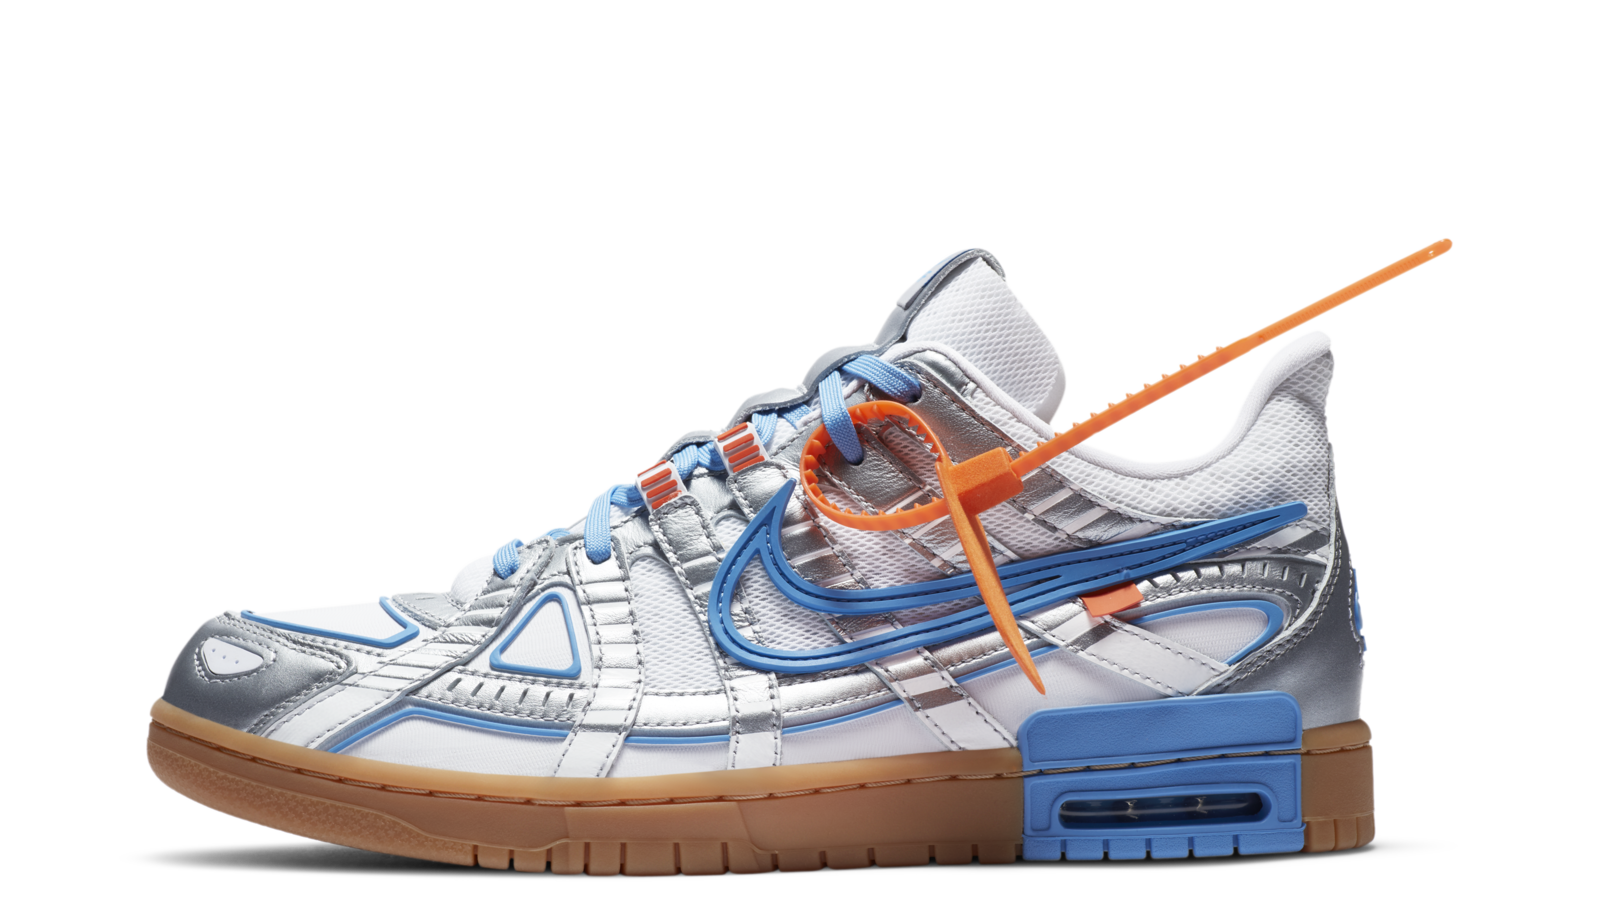 Nike Off White Rubber Dunk Official Images and Release Date 7